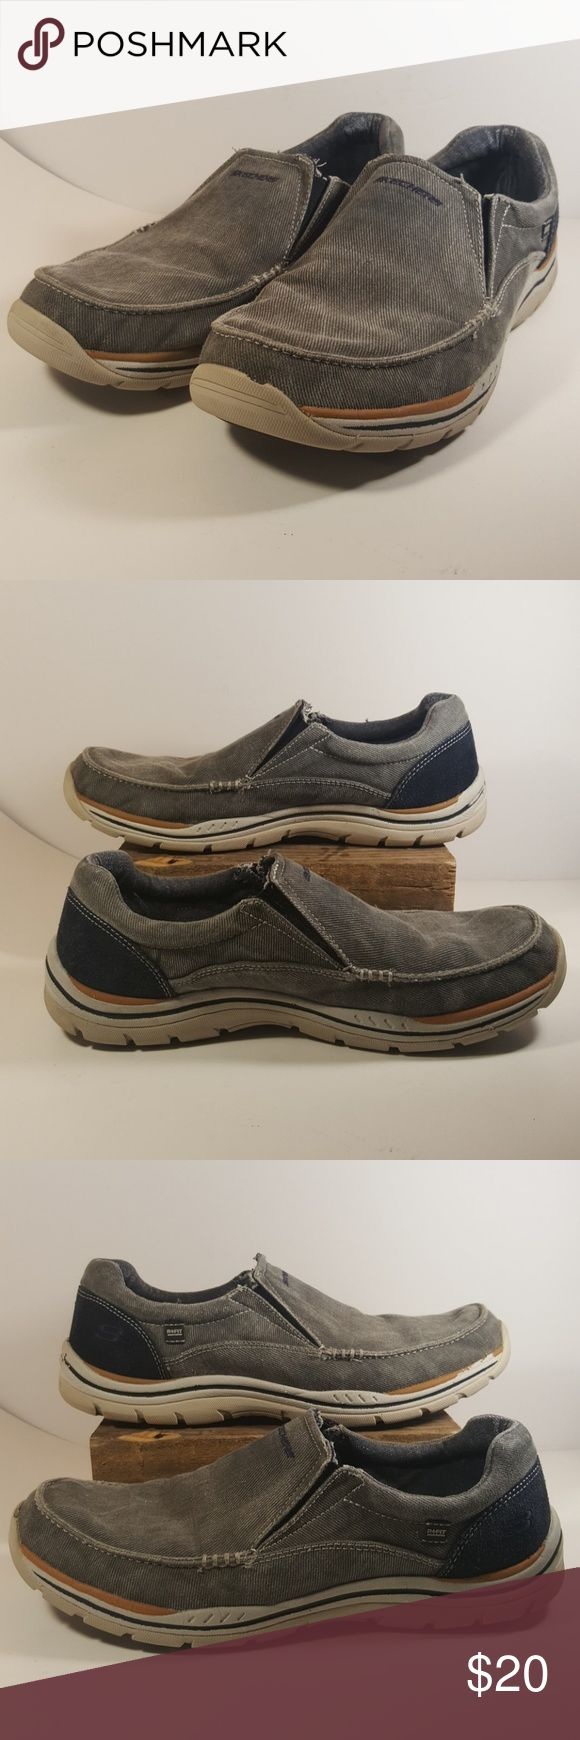 Skechers Men's Relaxed Fit Expected Avillo Sz 10.5 Canvas, Imported, Rubber sole, Casual slip-on shoe featuring lightly padded collar and concealed gored insets at entry Embroidered log Skechers  Men's Relaxed Fit Expected Avillo Loafer Black Slip On  Size 10.5 Cushioned memory foam footbed  Very good condition.  Feel free to ask any questions  Please check my other listings, I have more shoes and clothes for the whole family.  Thank you and have a great day. Skechers Shoes Sneakers